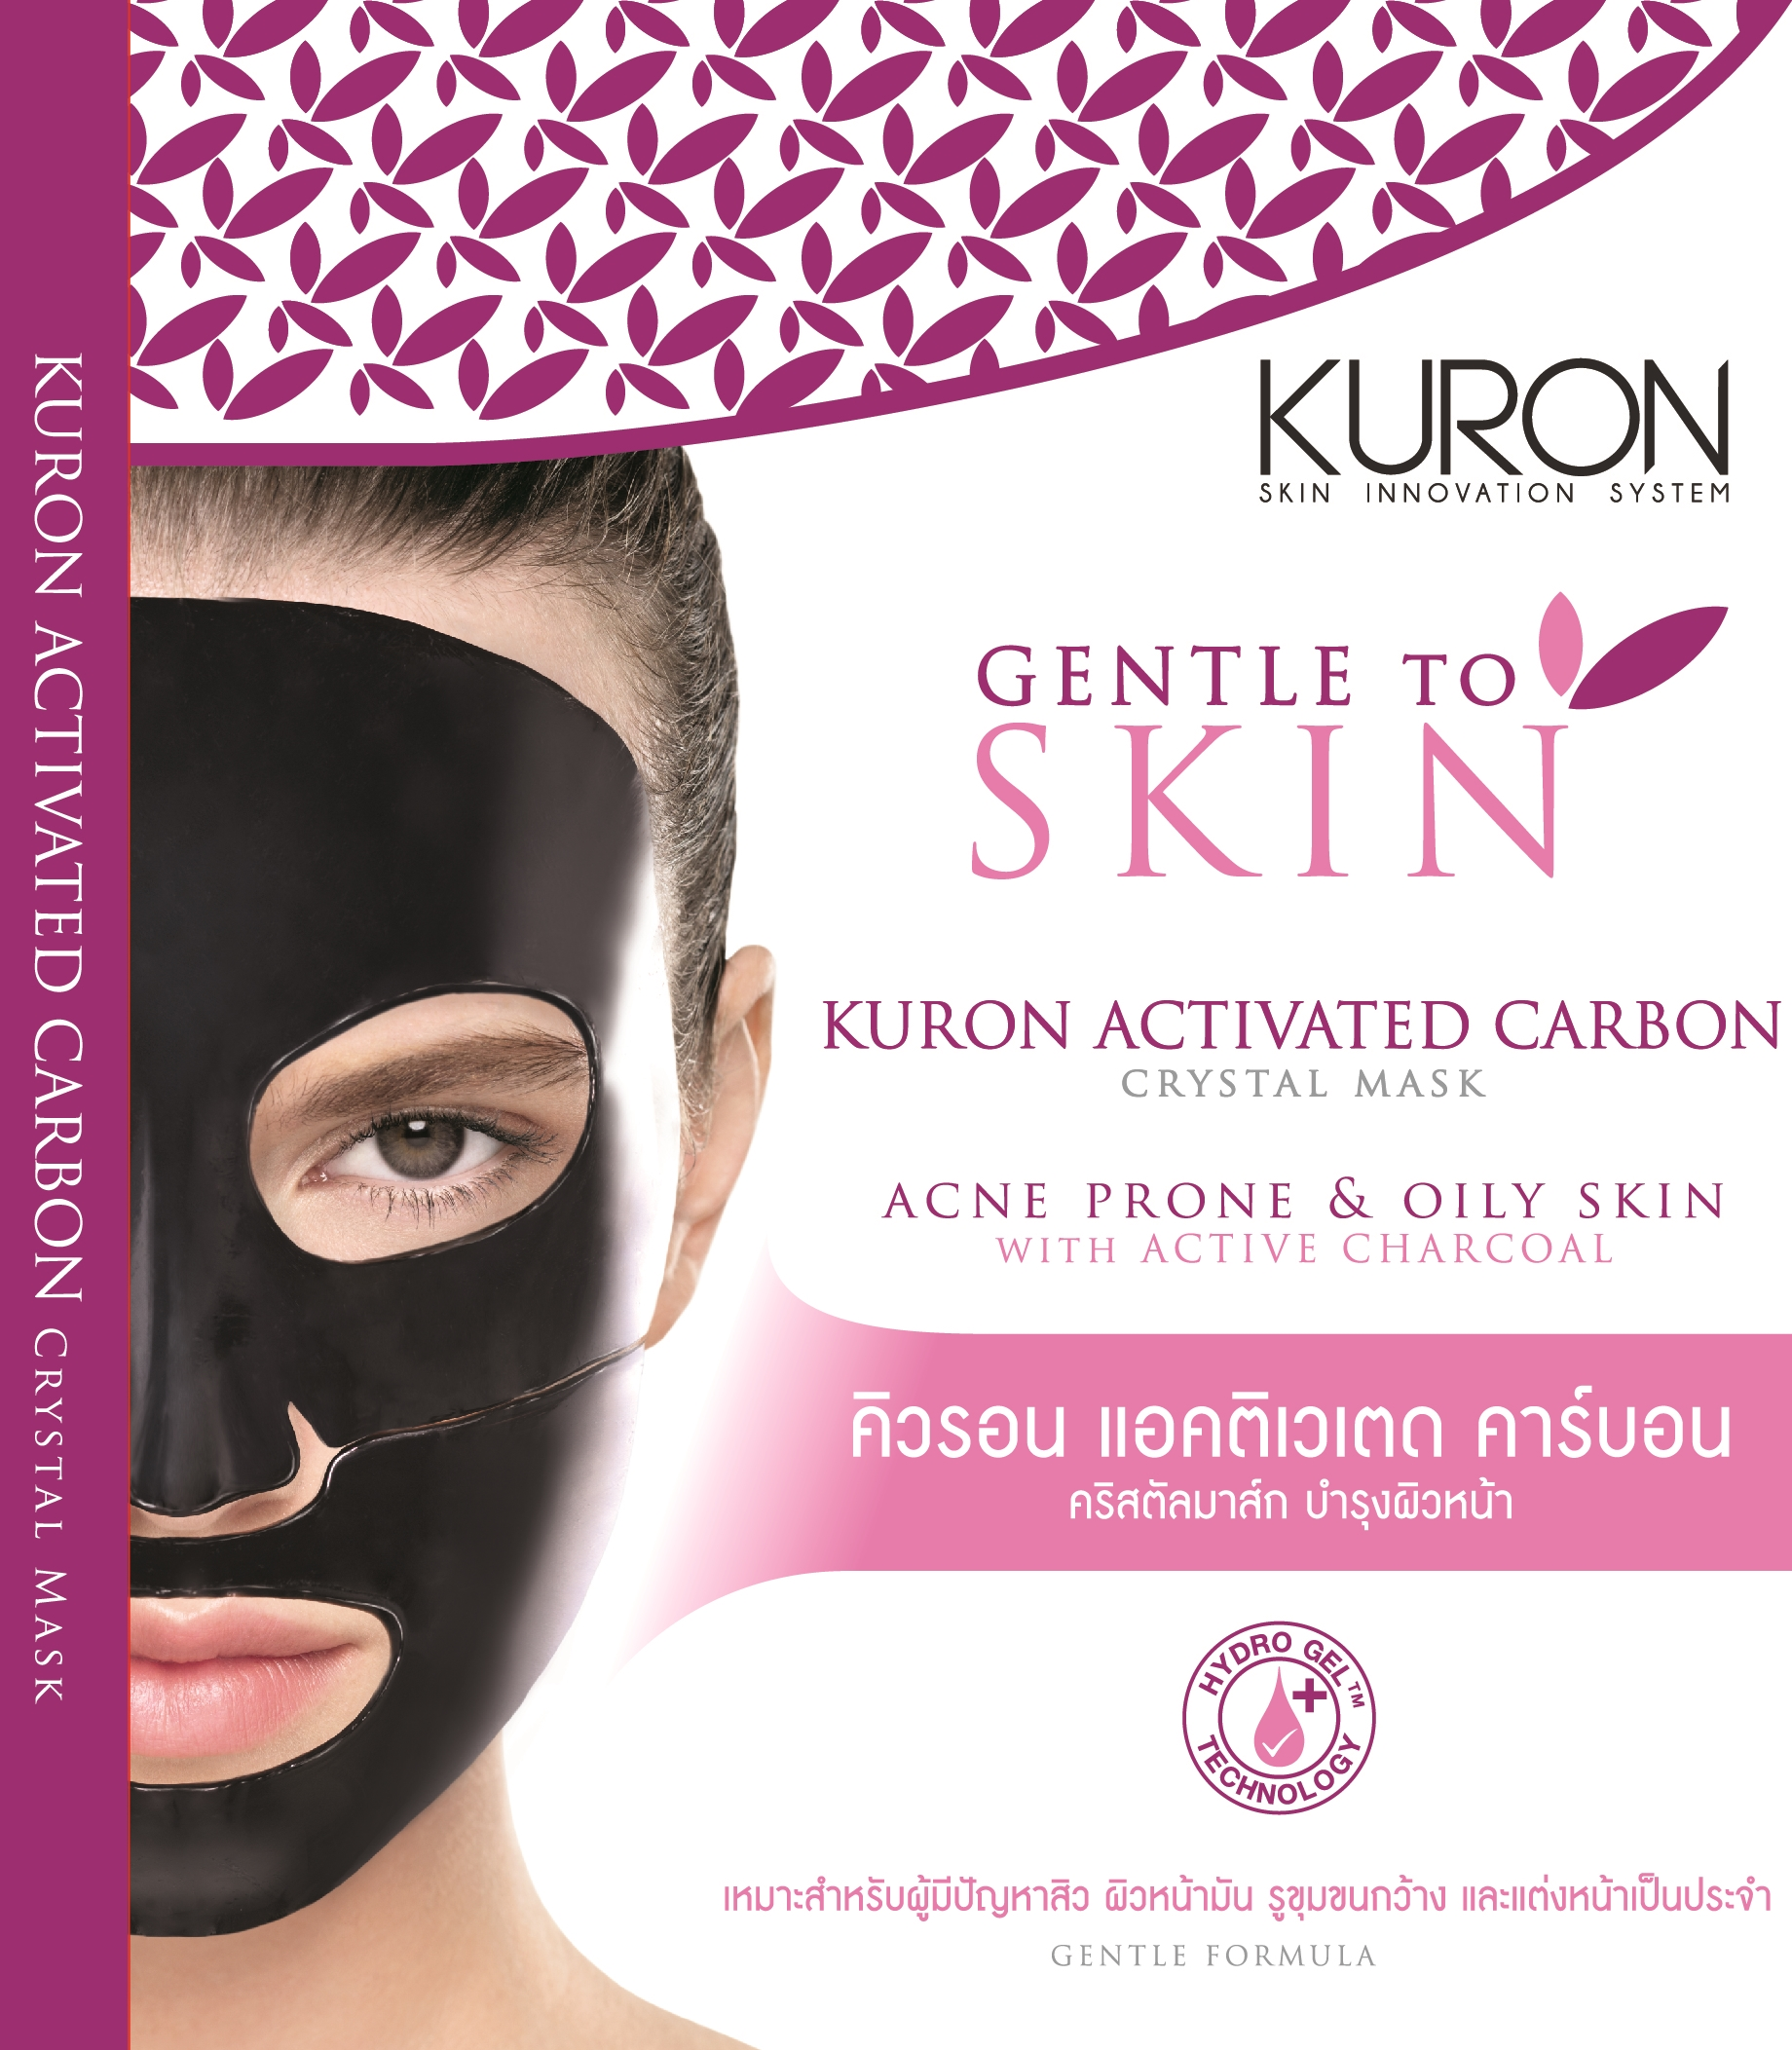 KURON ACTIVATED CARBON CRYSTAL MASK Hydro Gel มาส์กไฮโดรเจล